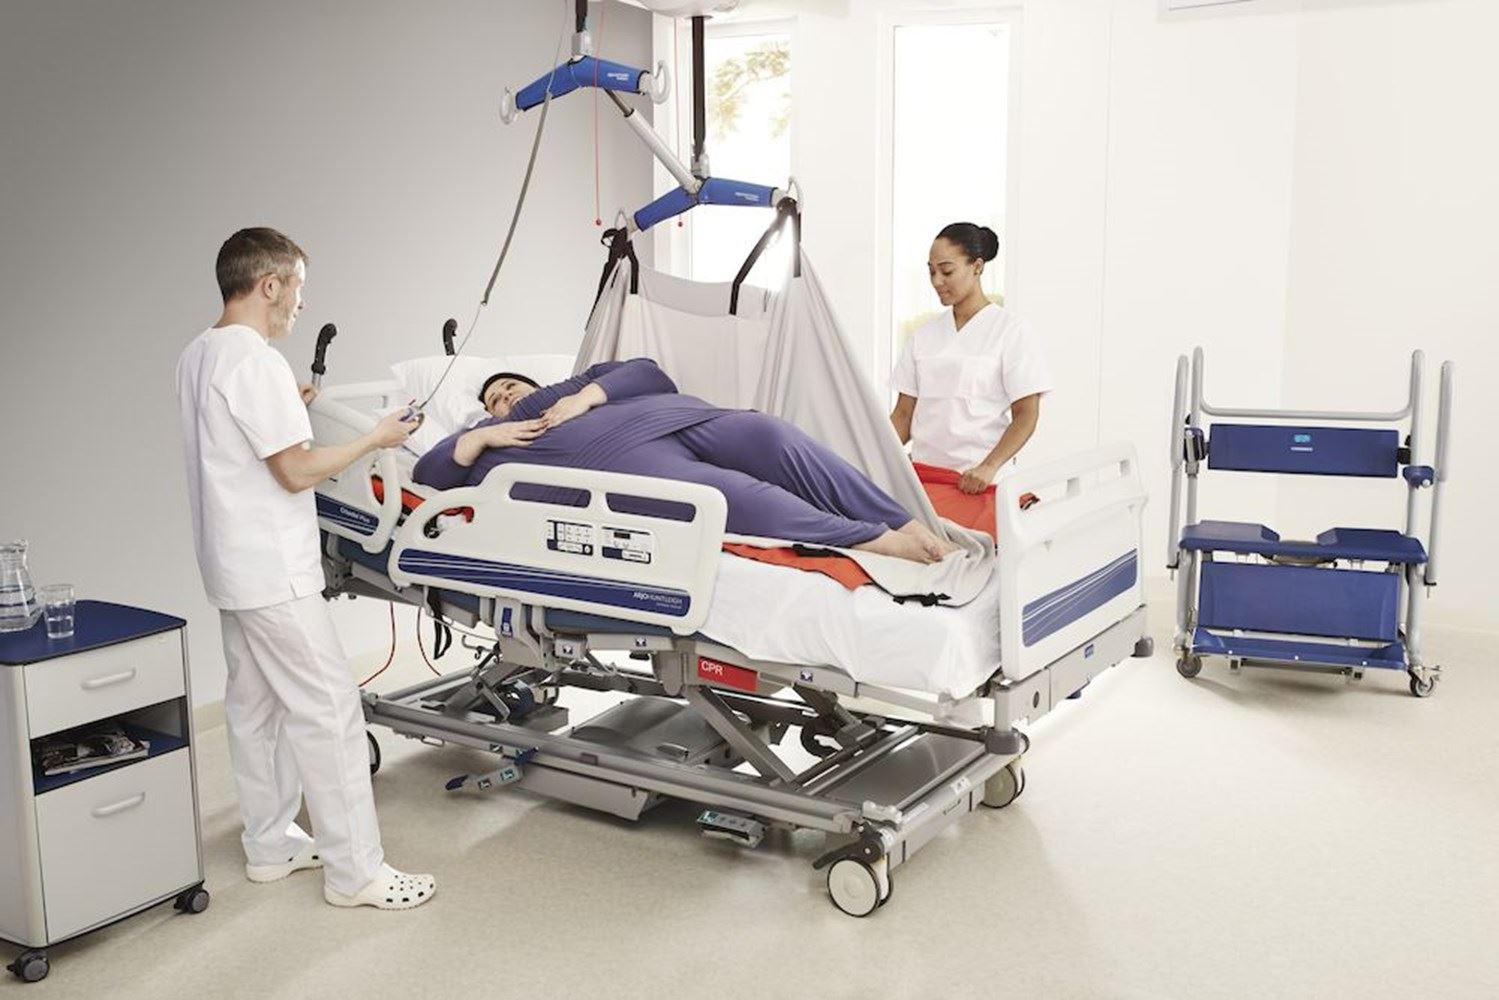 Protecting caregivers from injury while safely caring for plus size patients